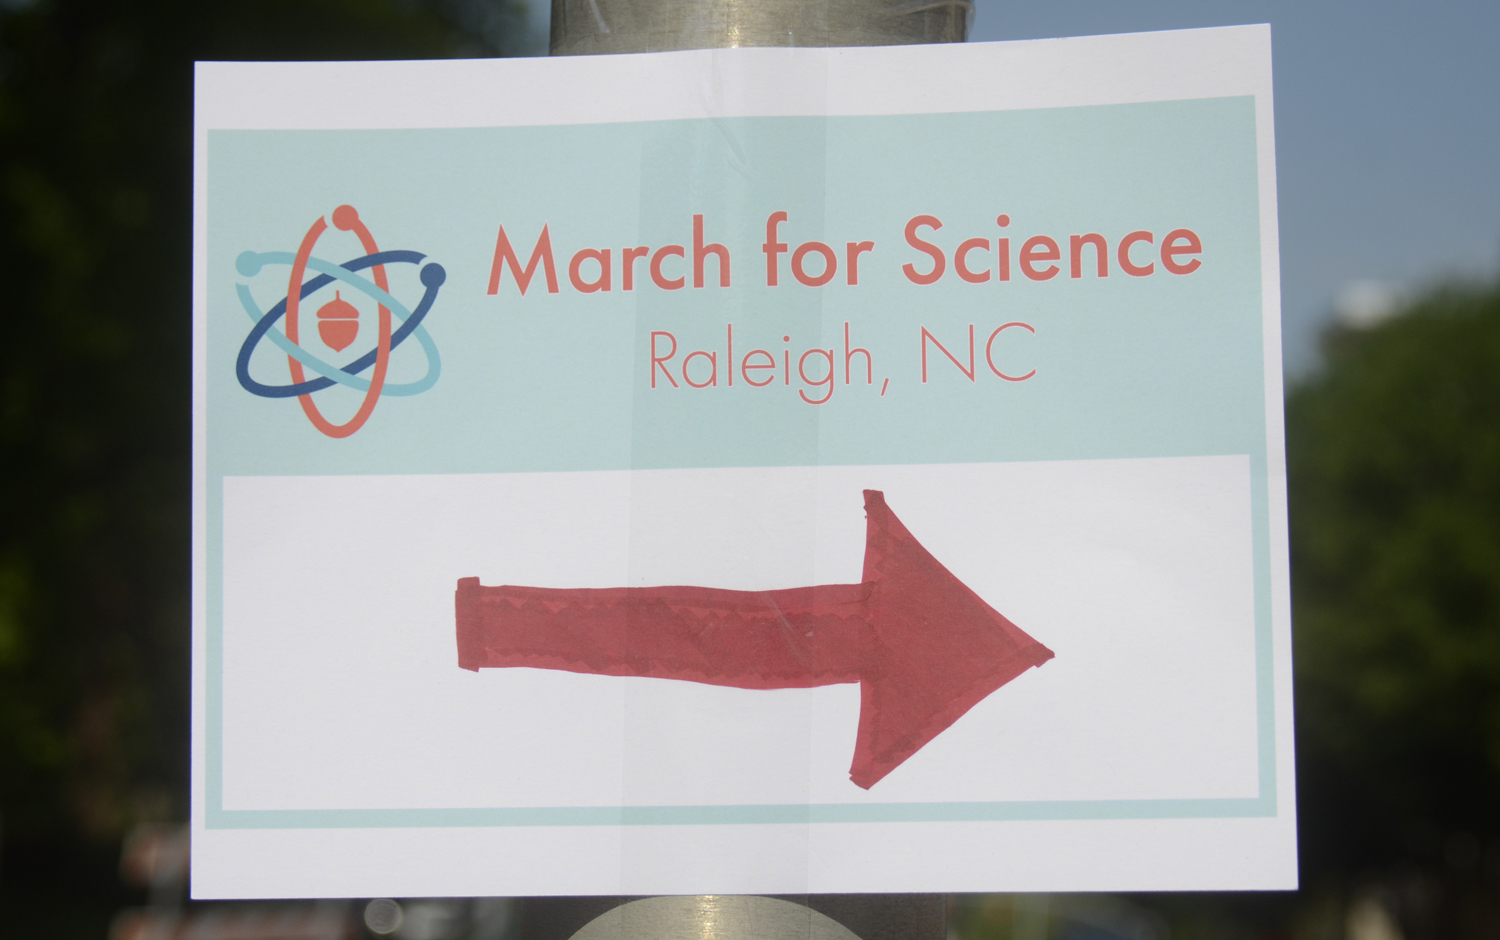 Raleigh March for Science 01.jpg